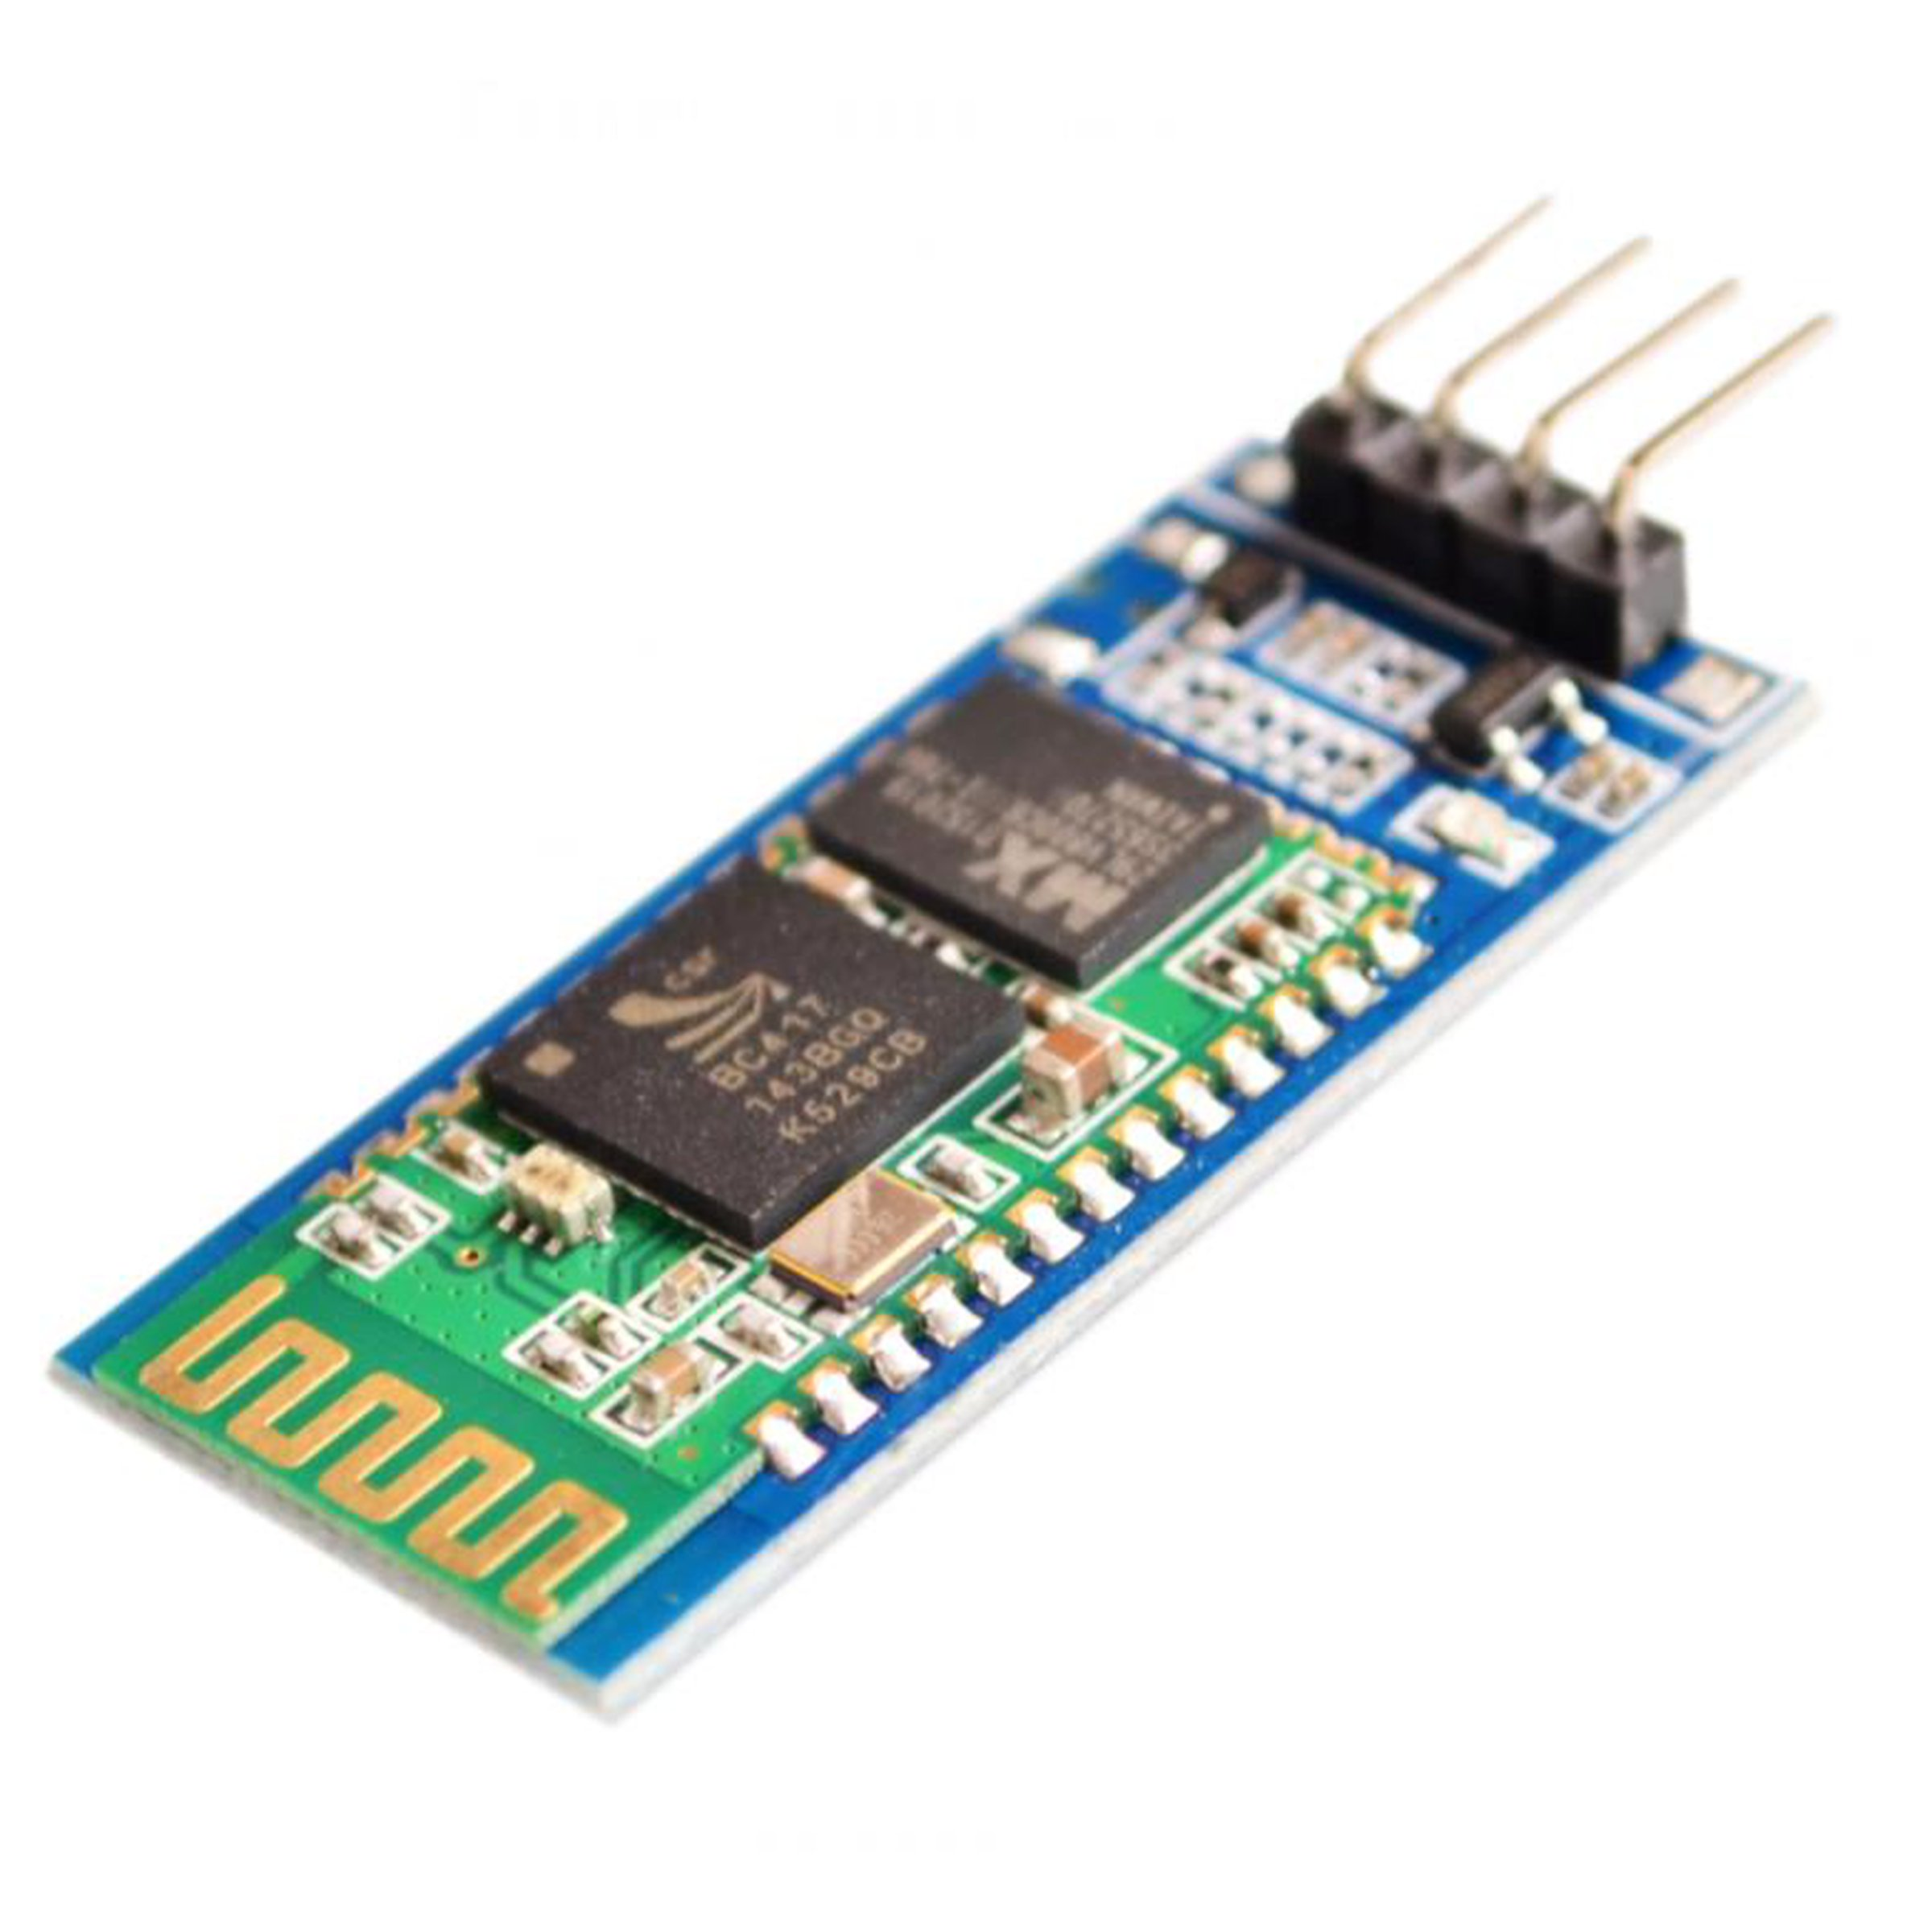 Hc 06 4 Pin Bluetooth Rf Transceiver Module From Doitam On Tindie Rs232 Laser